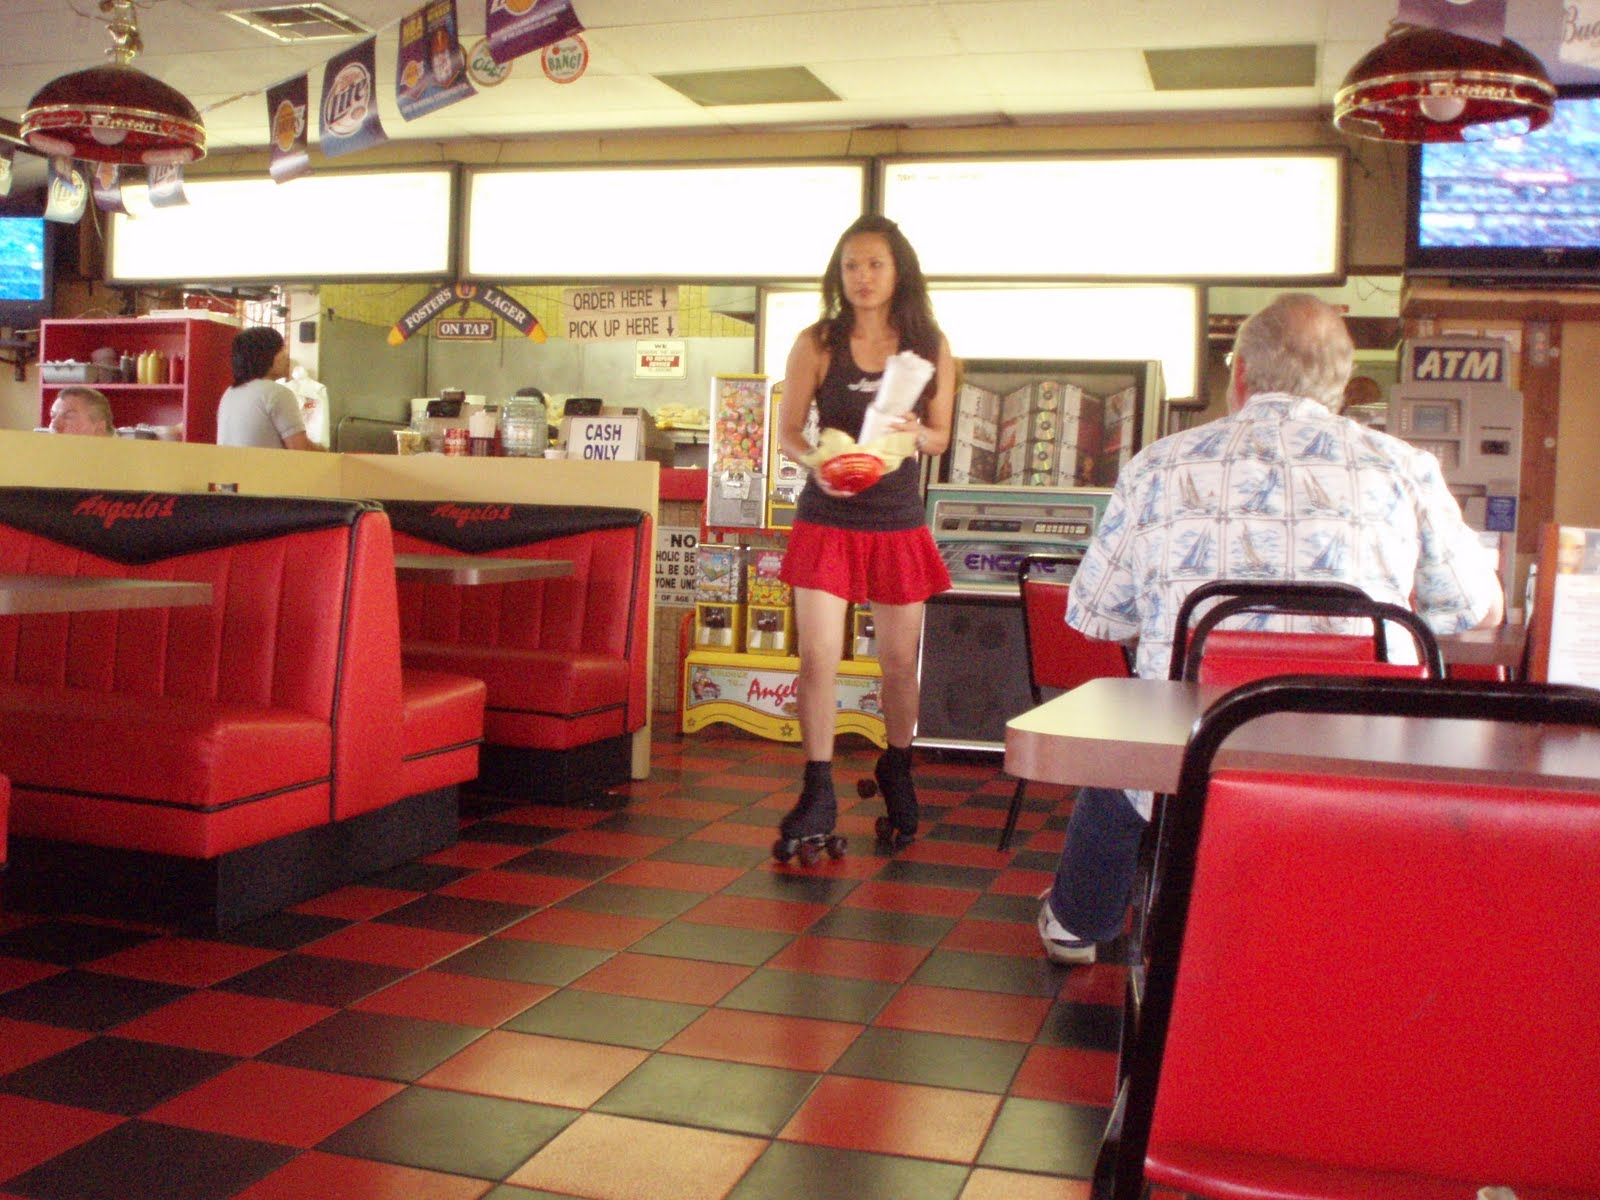 Food Coma 911 » Blog Archive Anaheim Angelo's – 50′s Style